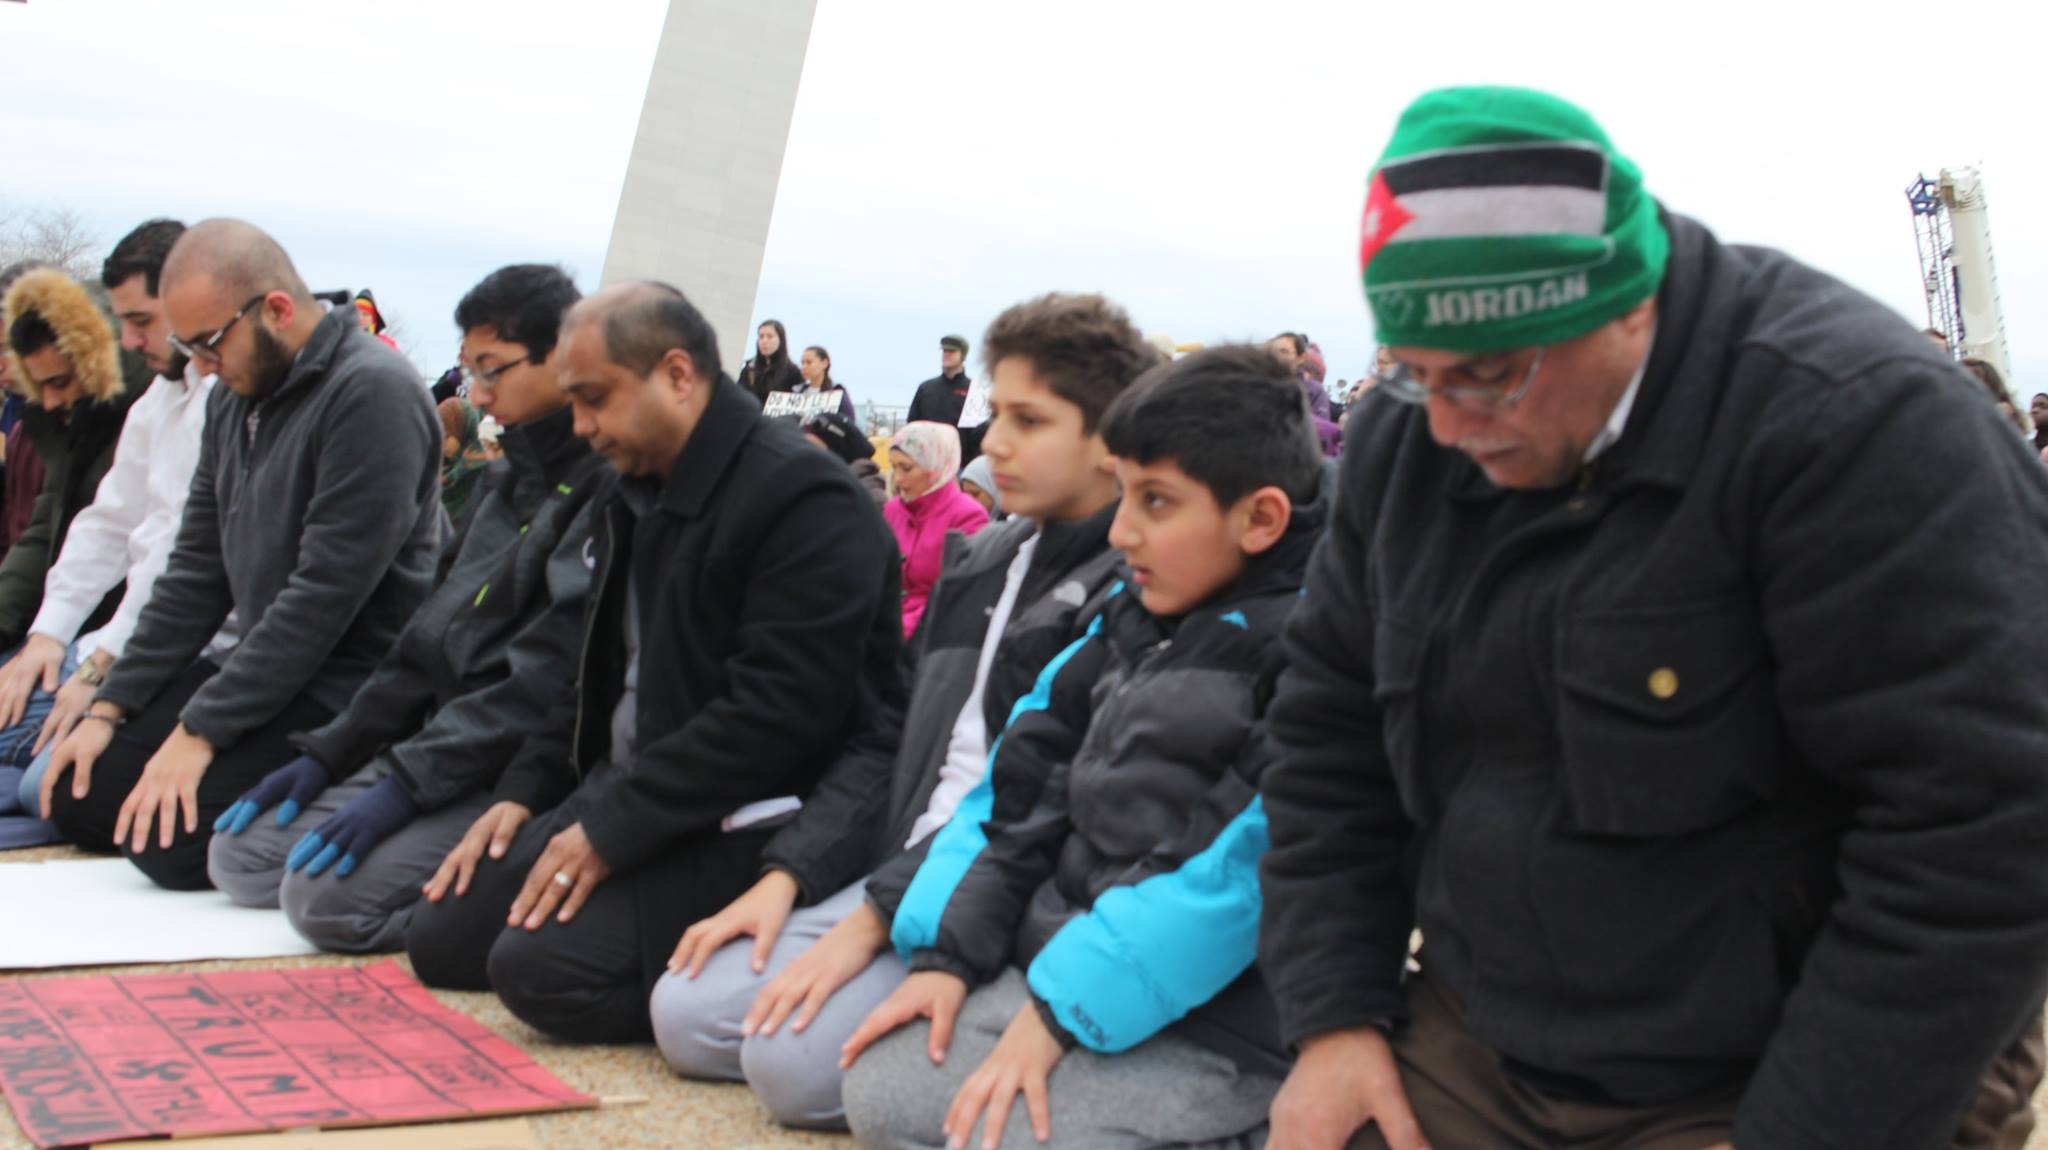 Muslims Praying at St. Louis Arch During Muslim Ban Protest CAIR Missouri